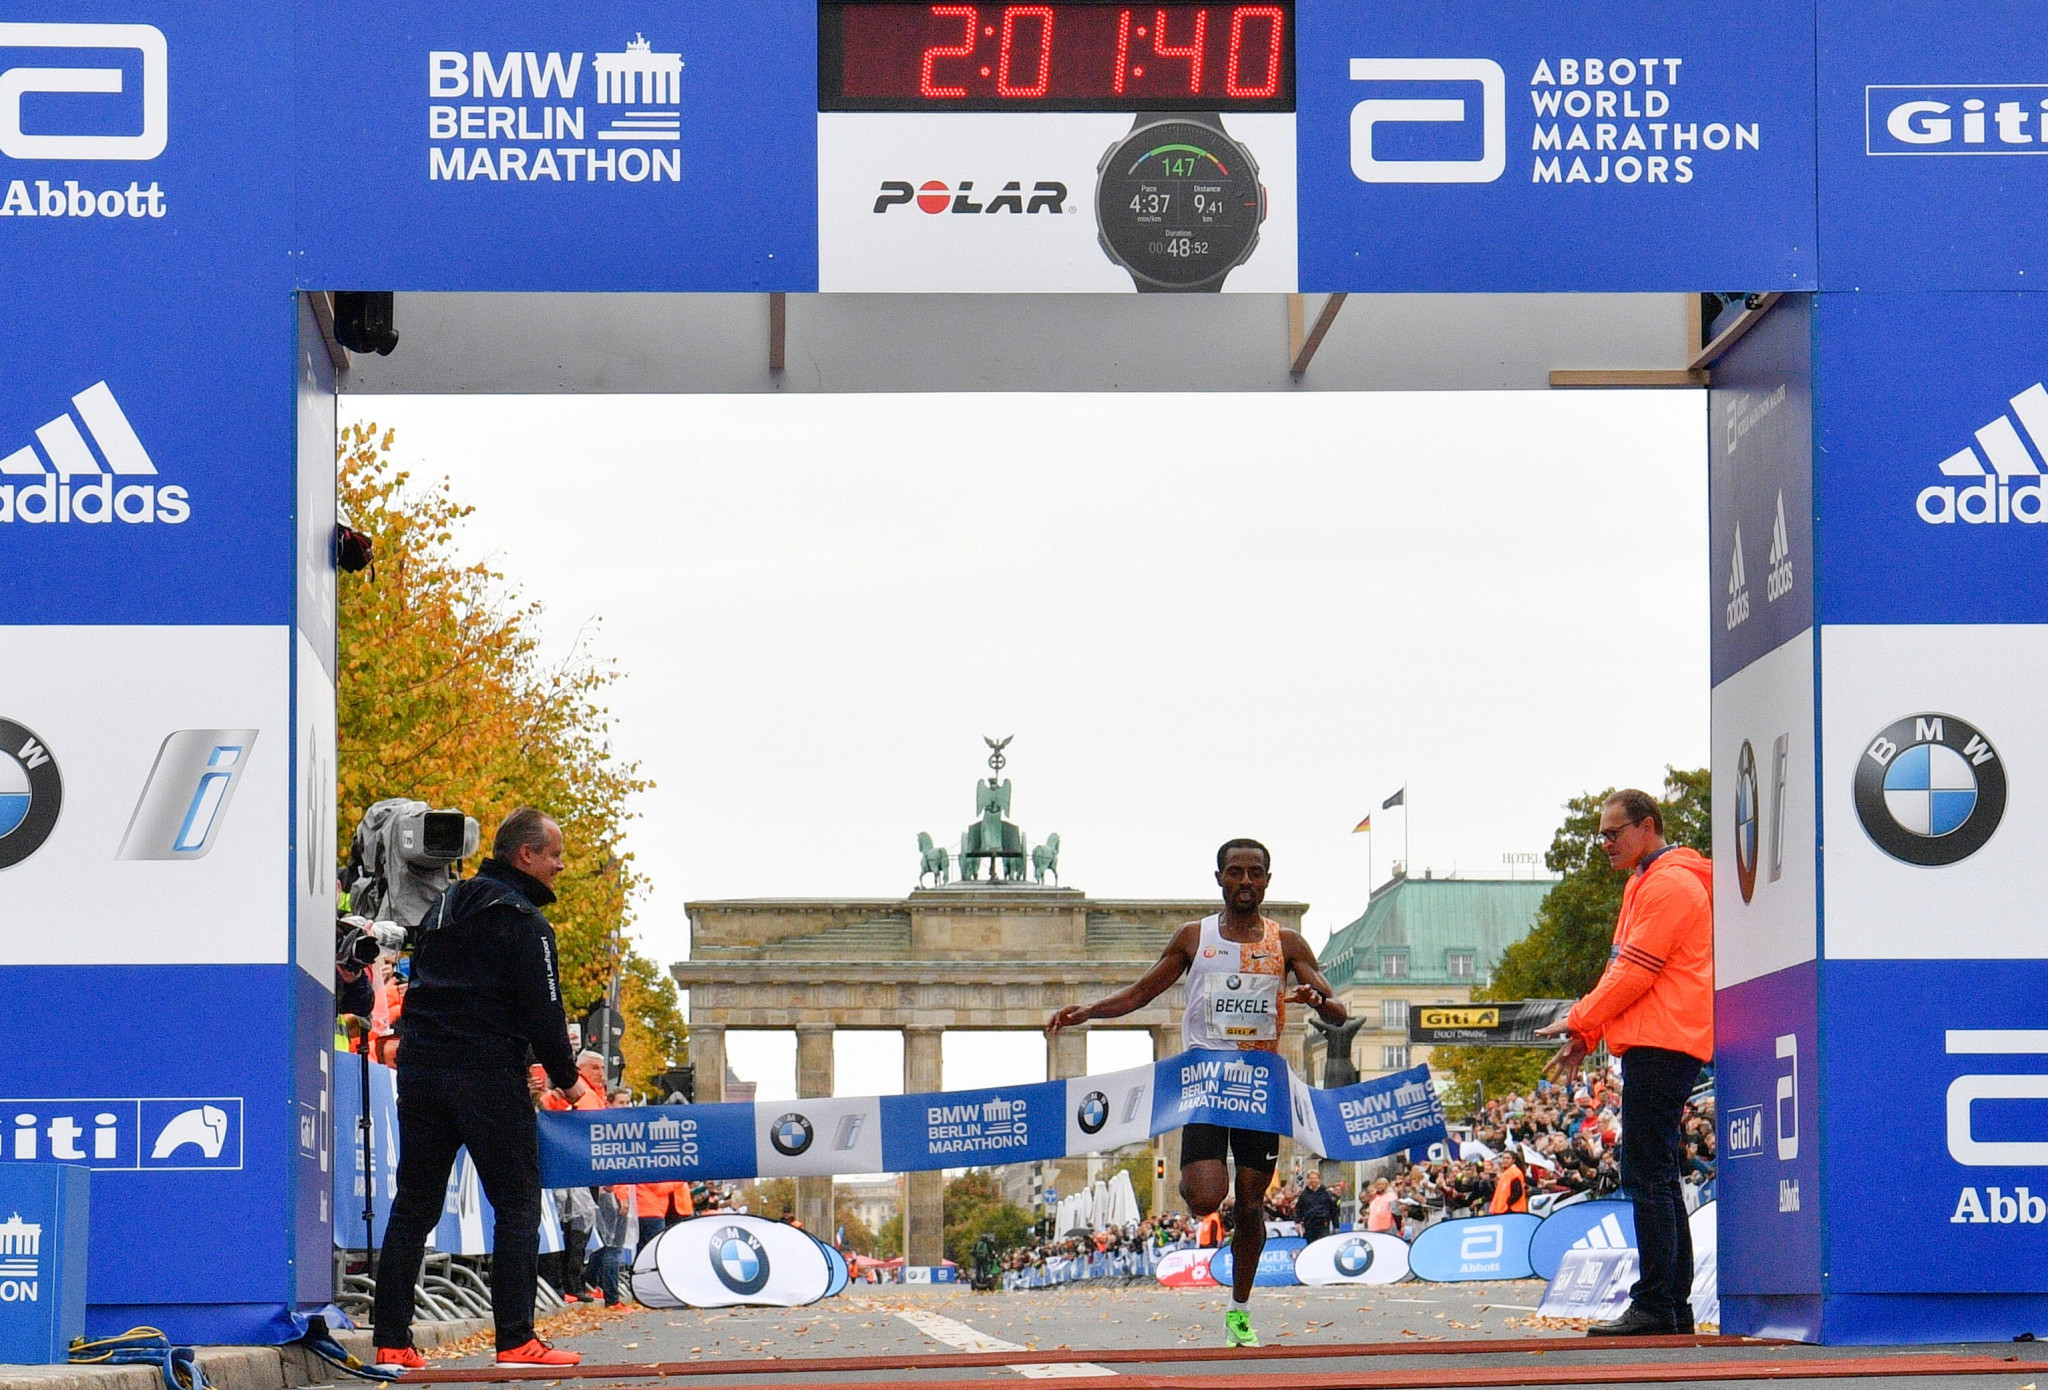 Kenenisa Bekele set the second-fastest marathon time in history in Berlin ©Getty Images